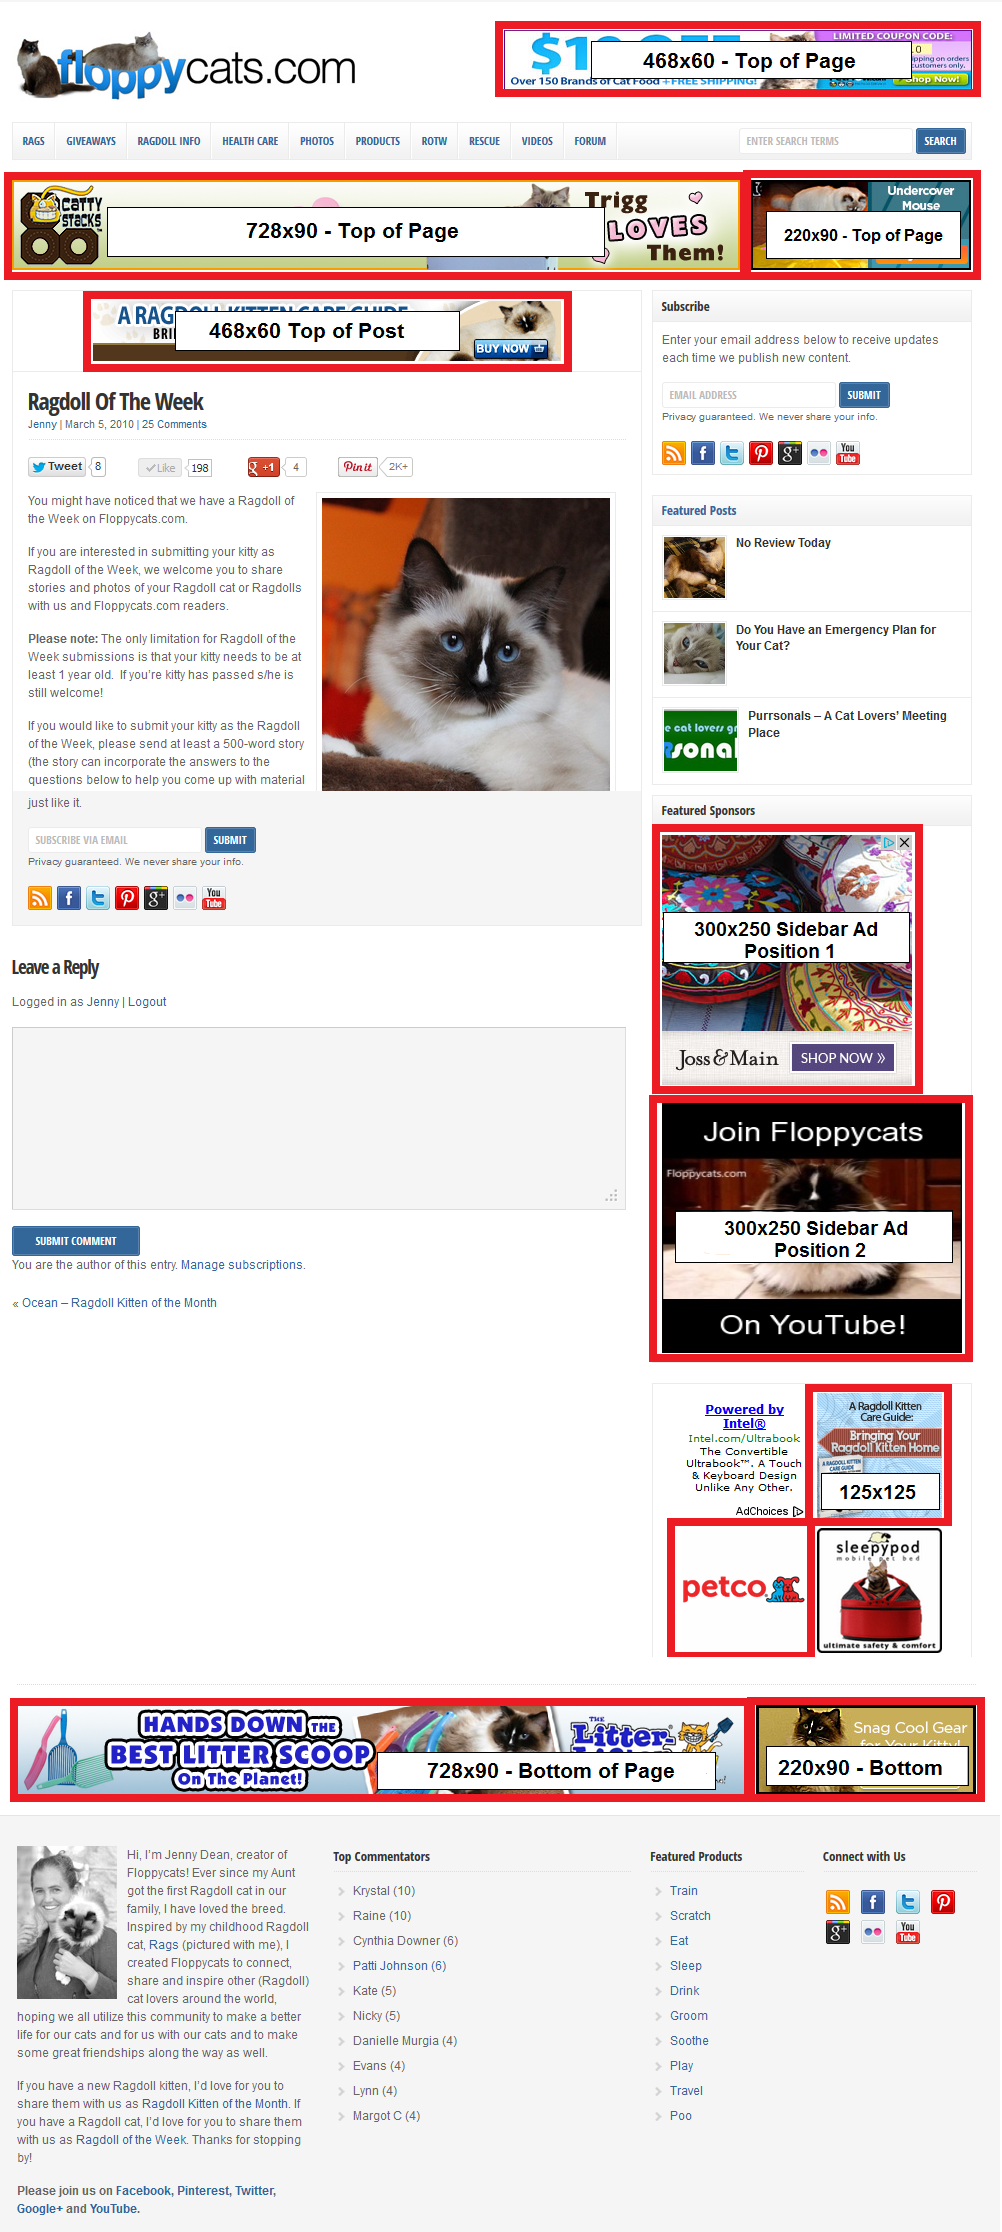 Floppycats Advertising 2013 with 468x60 Top of Post